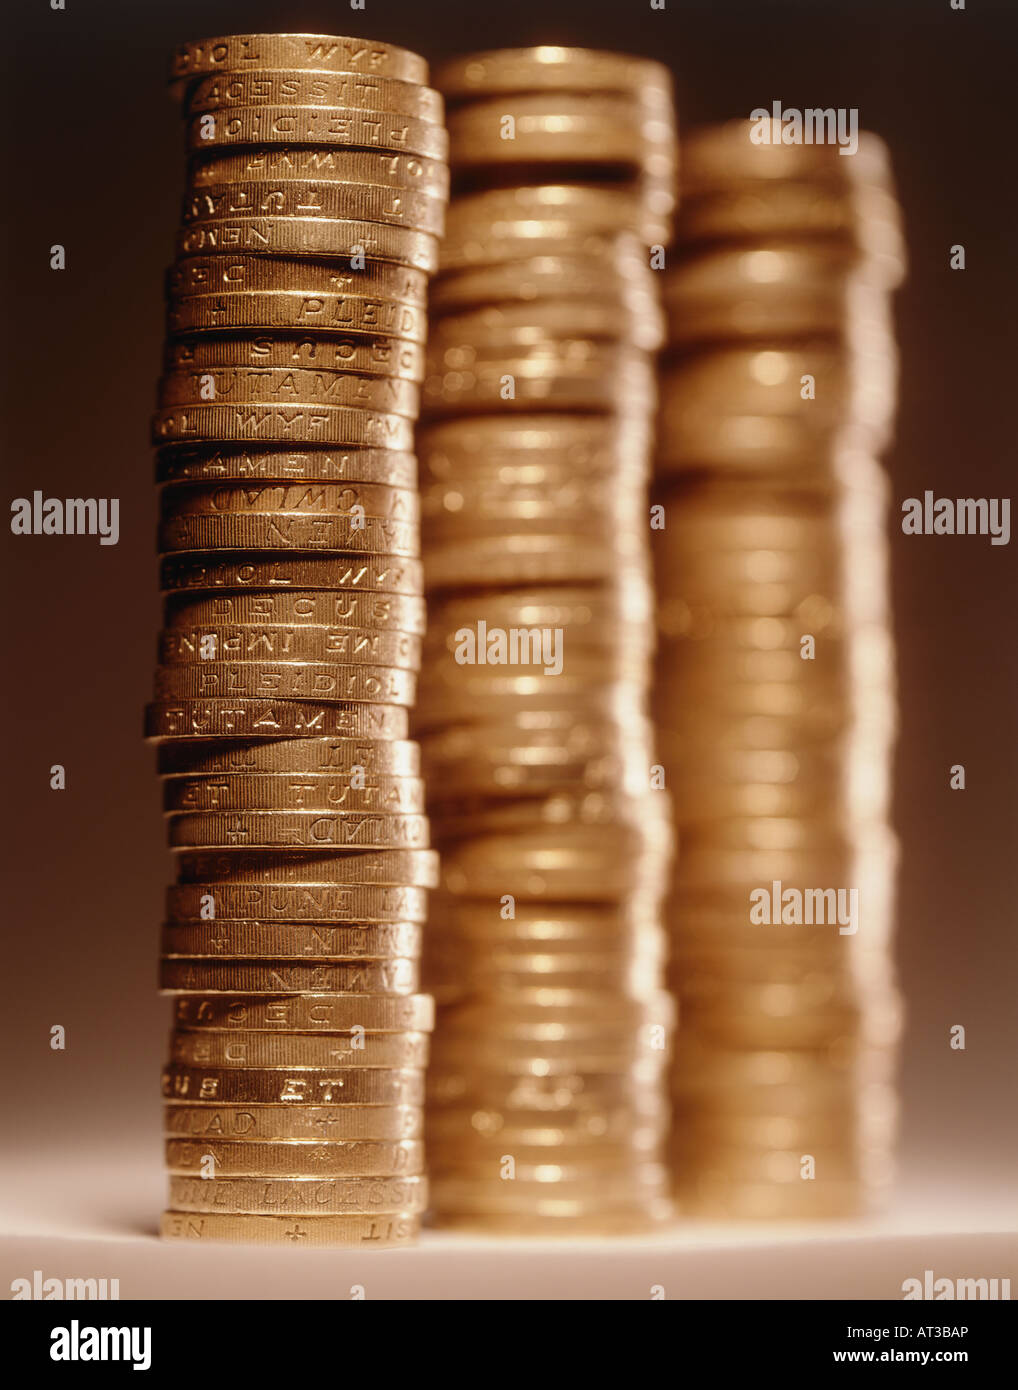 One pound coins stacked in three piles Stock Photo